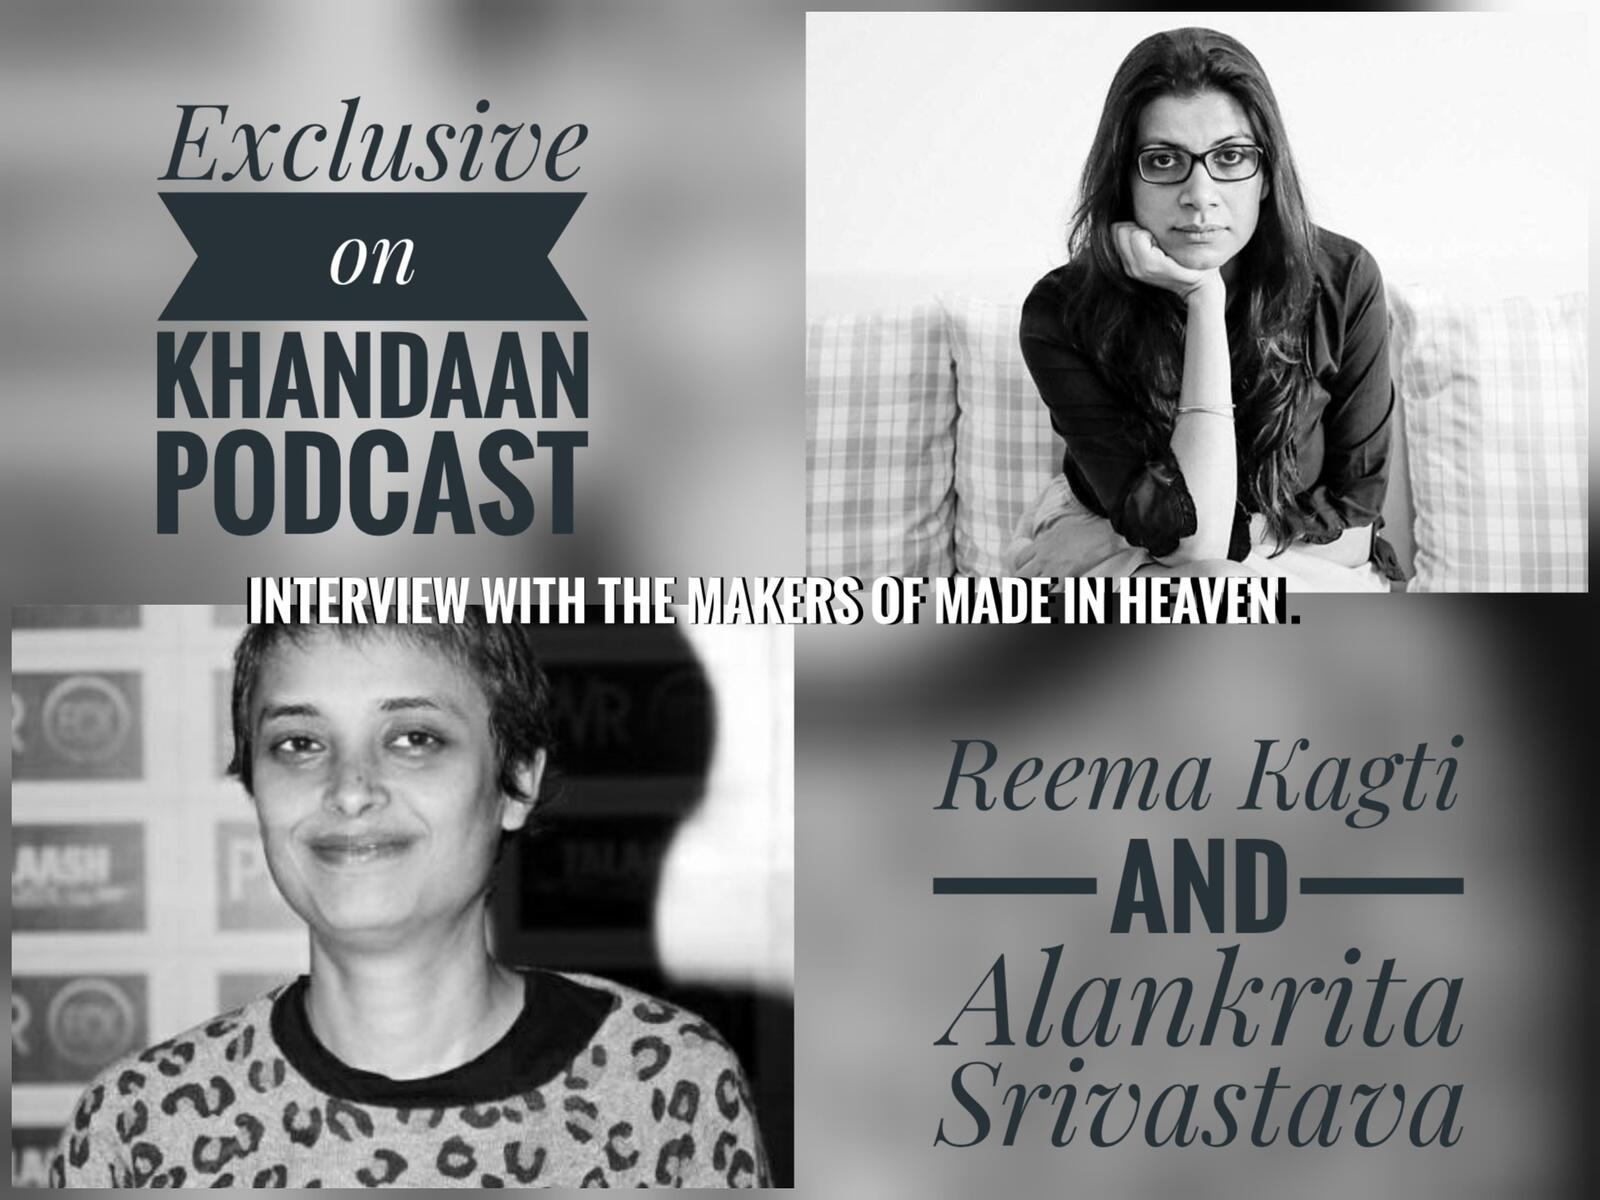 Ep 238- Reema Kagti and Alankrita Shrivastav Interviews- Made In Heaven